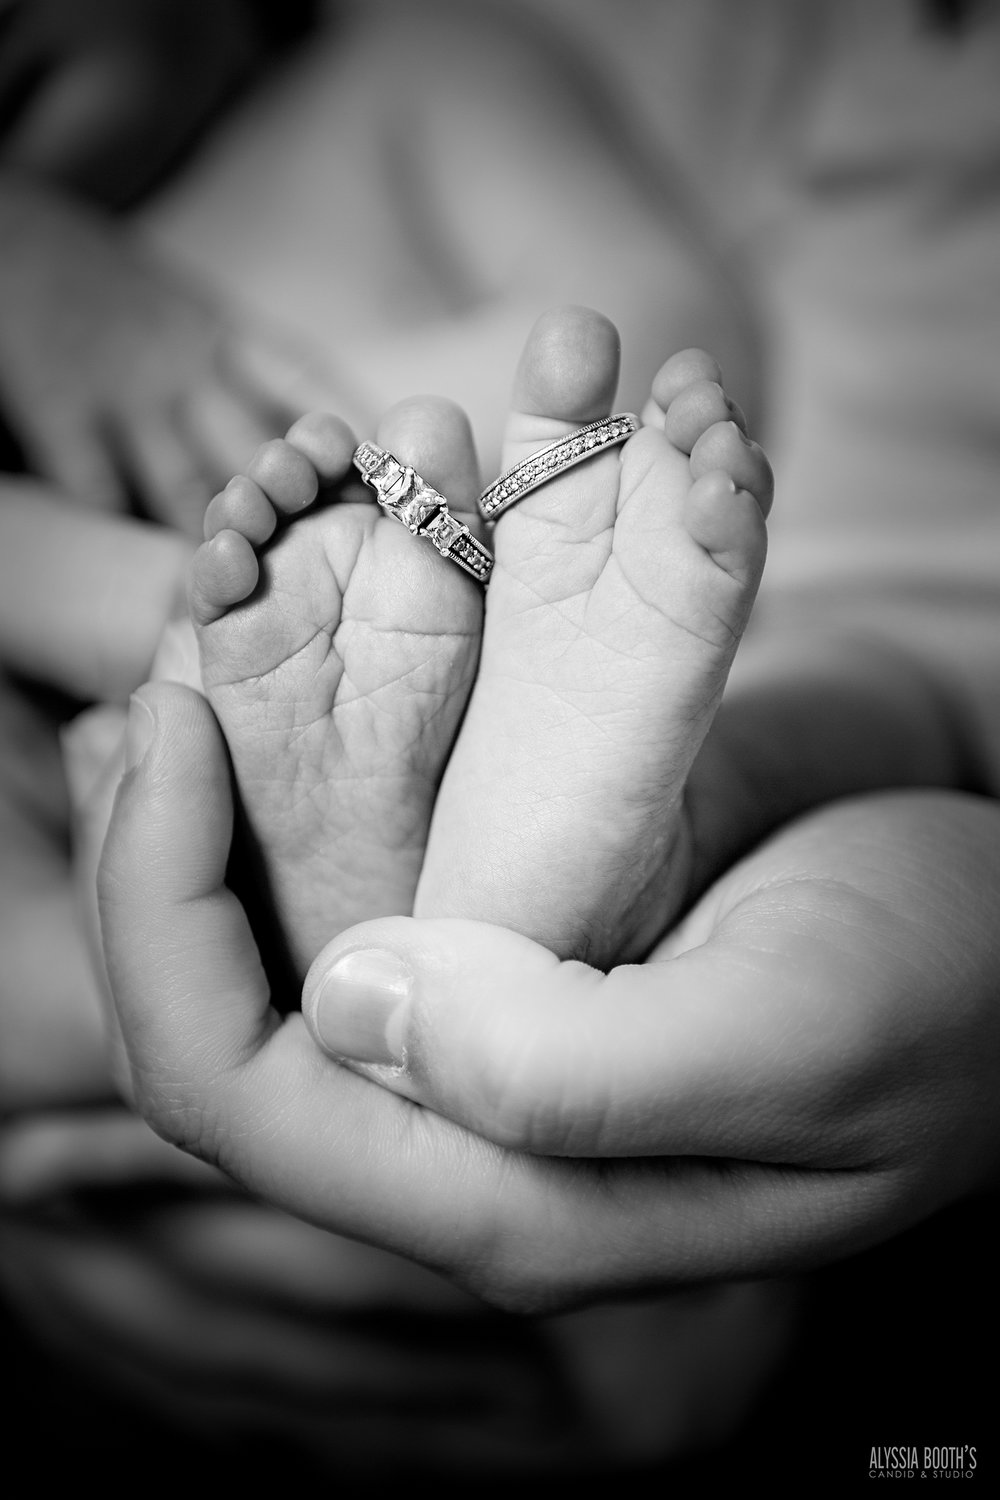 Baby Feet & Wedding Ring | Alyssia Booth's Candid & Studio | Newborn Photography | www.abcandidstudio.com